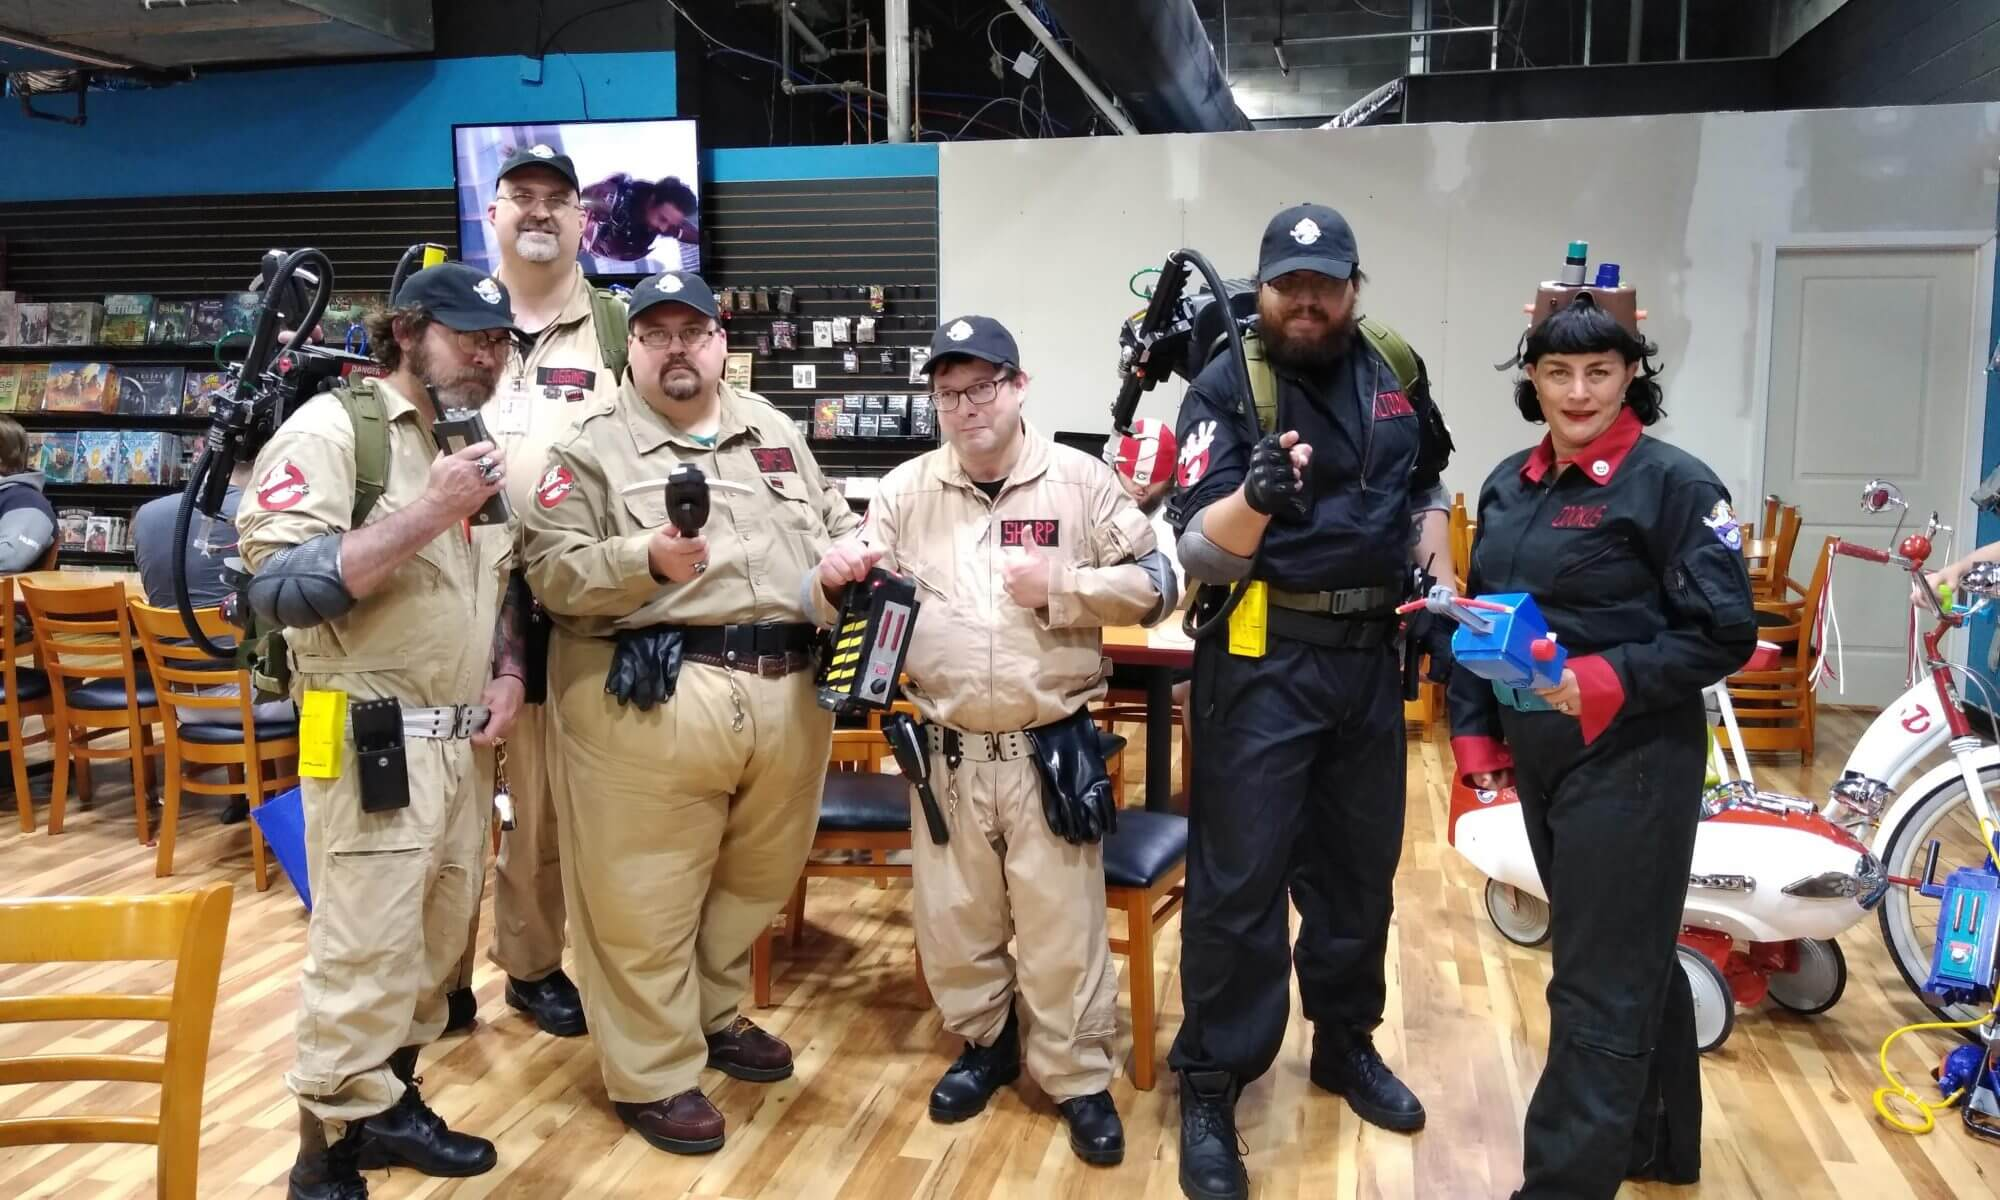 The North Georgia Ghostbusters